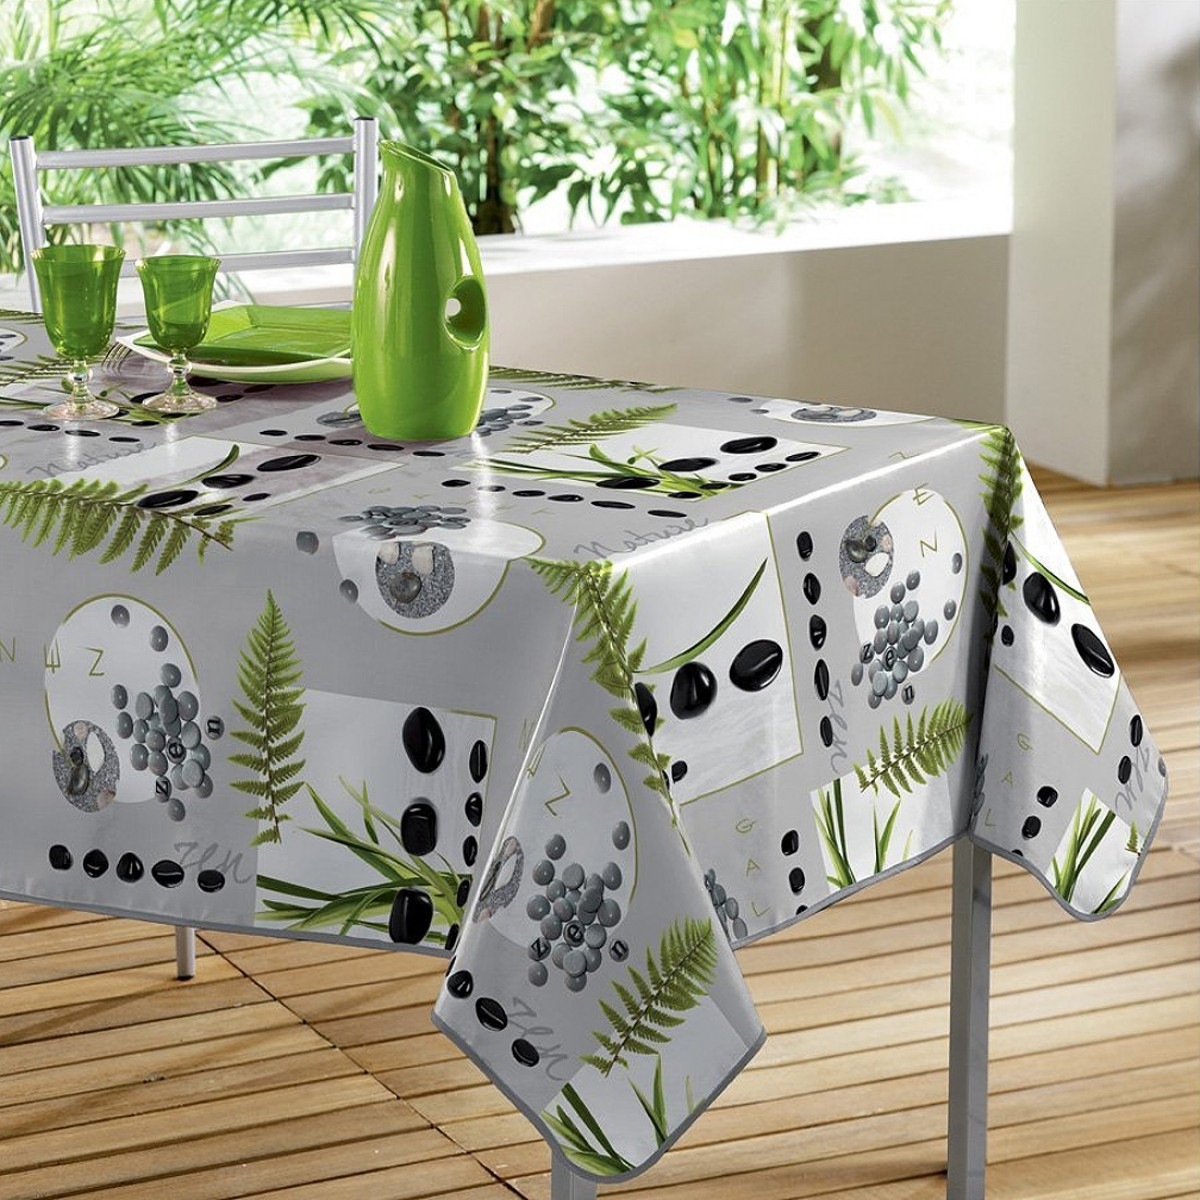 nappe en toile cir e jardin zen les douces nuits de ma linge de maison. Black Bedroom Furniture Sets. Home Design Ideas